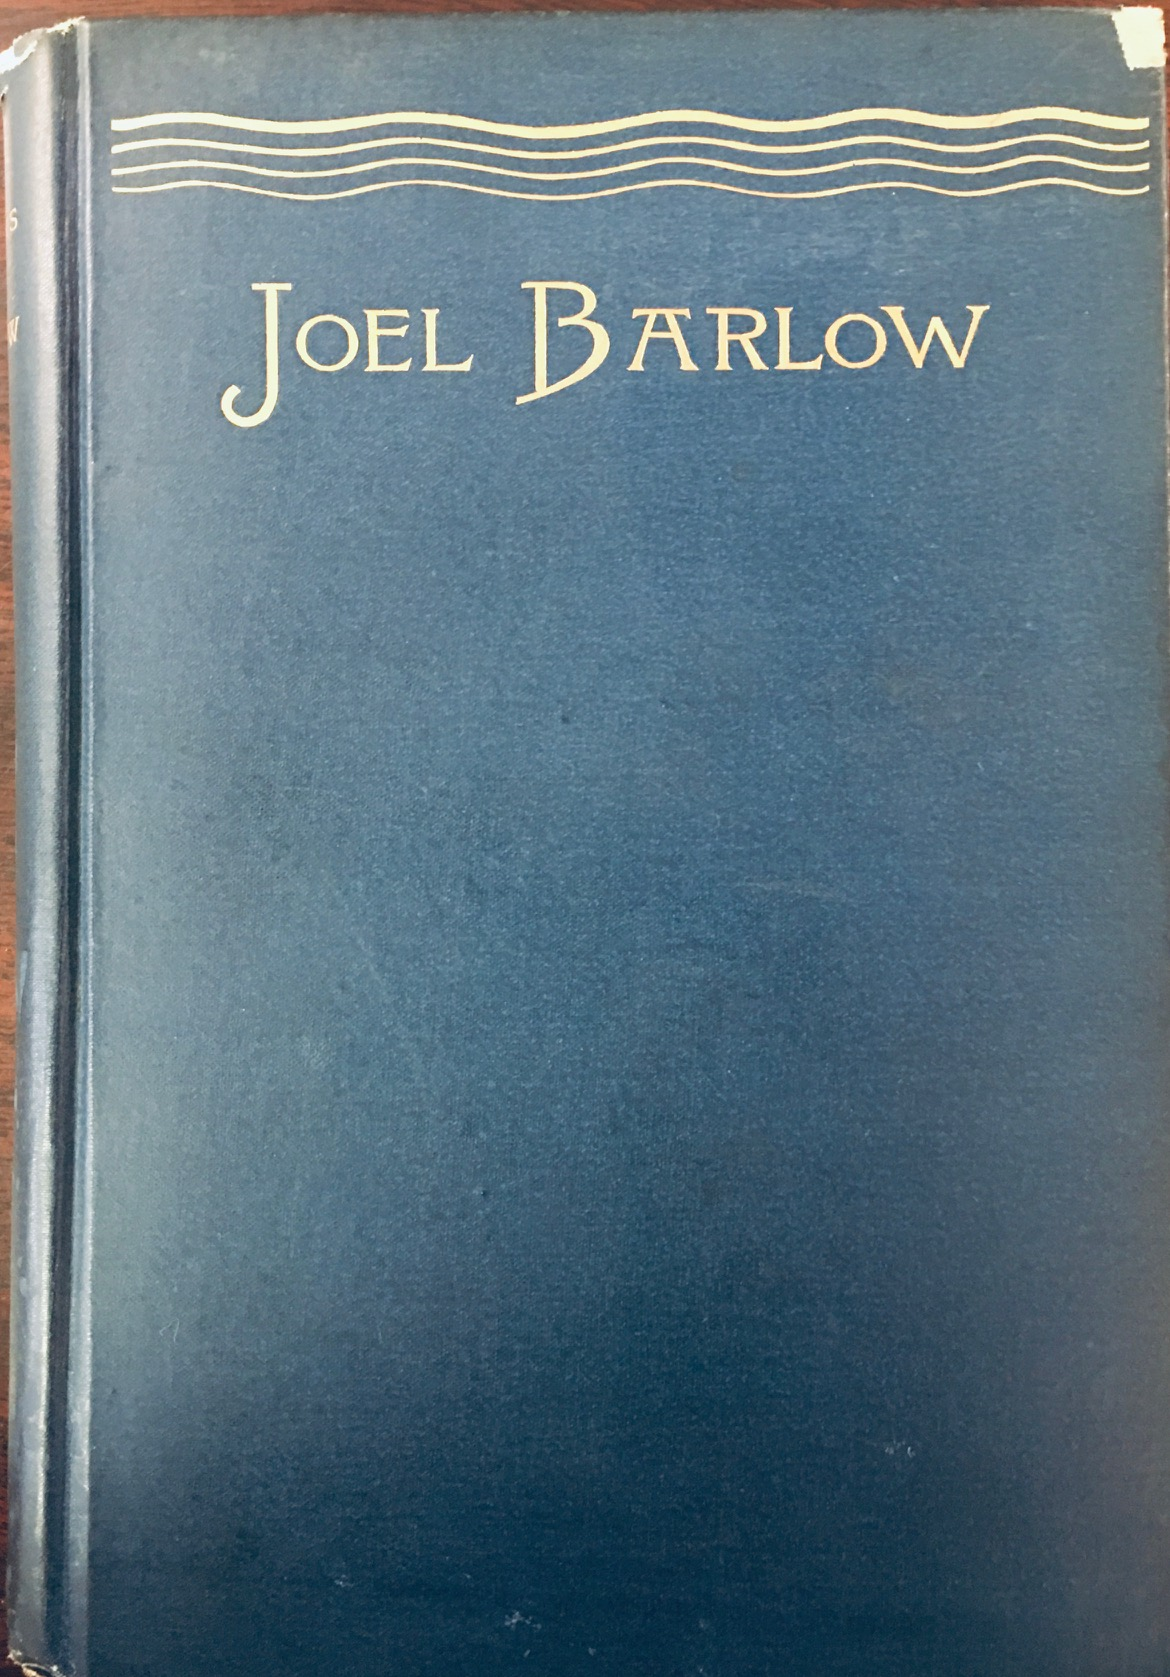 Image for Life And Letters Of Joel Barlow, LL.D.: Poet, Statesman, Philosopher - with extracts from his works and hitherto unpublished poems